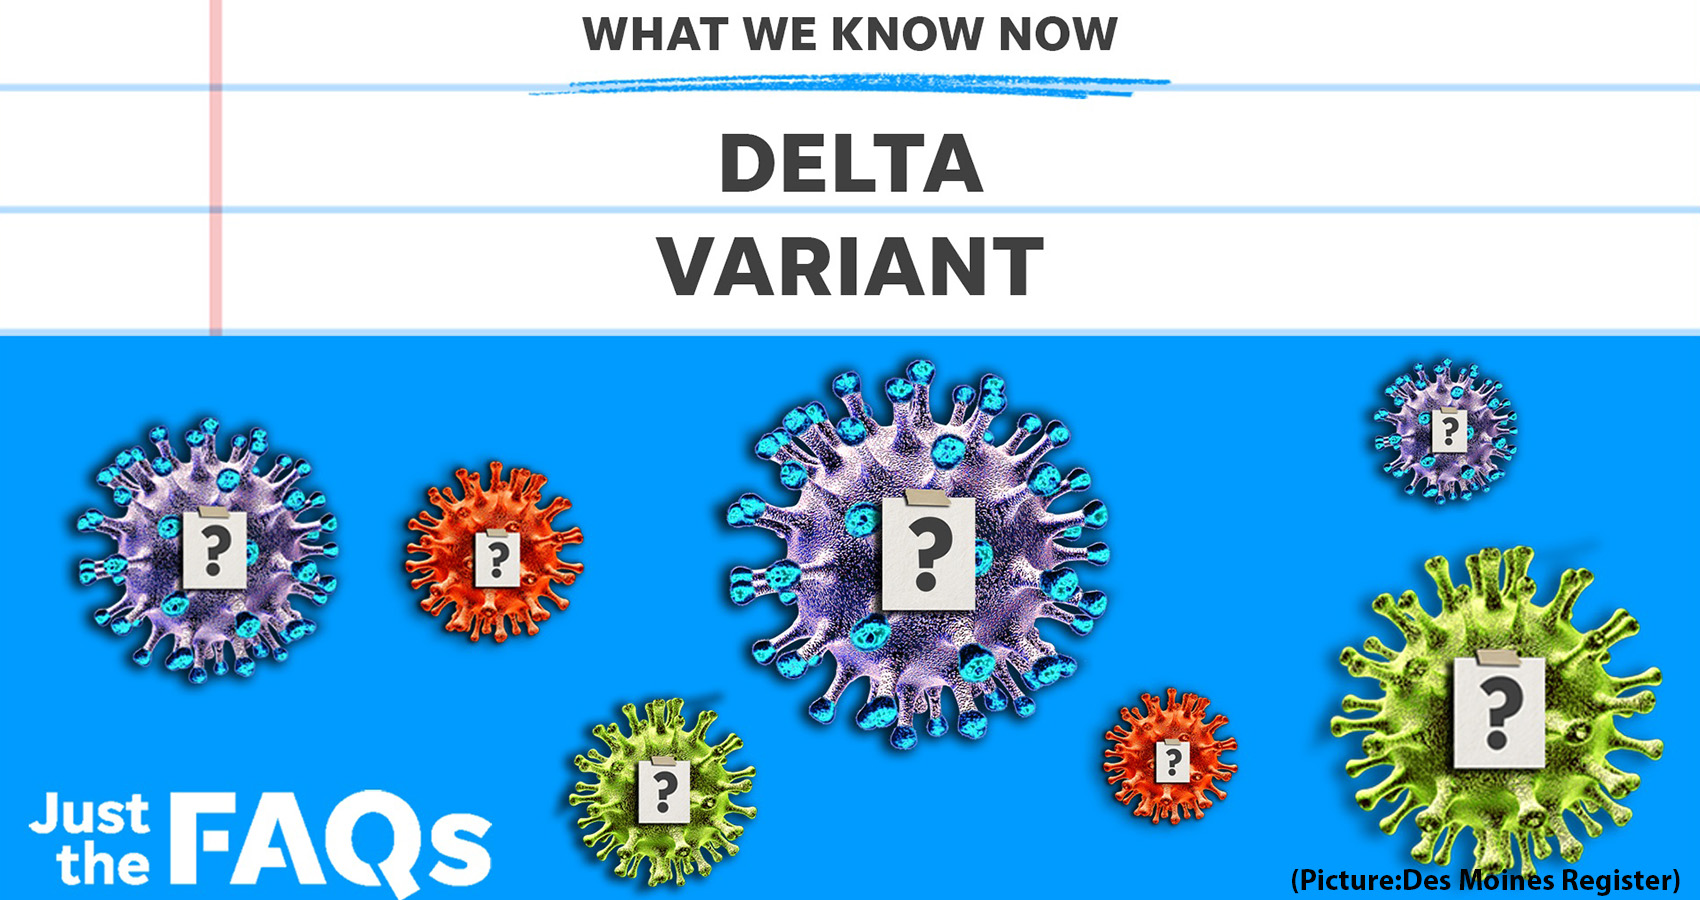 What The Delta Variant Means For COVID-19 Spread And Vaccines